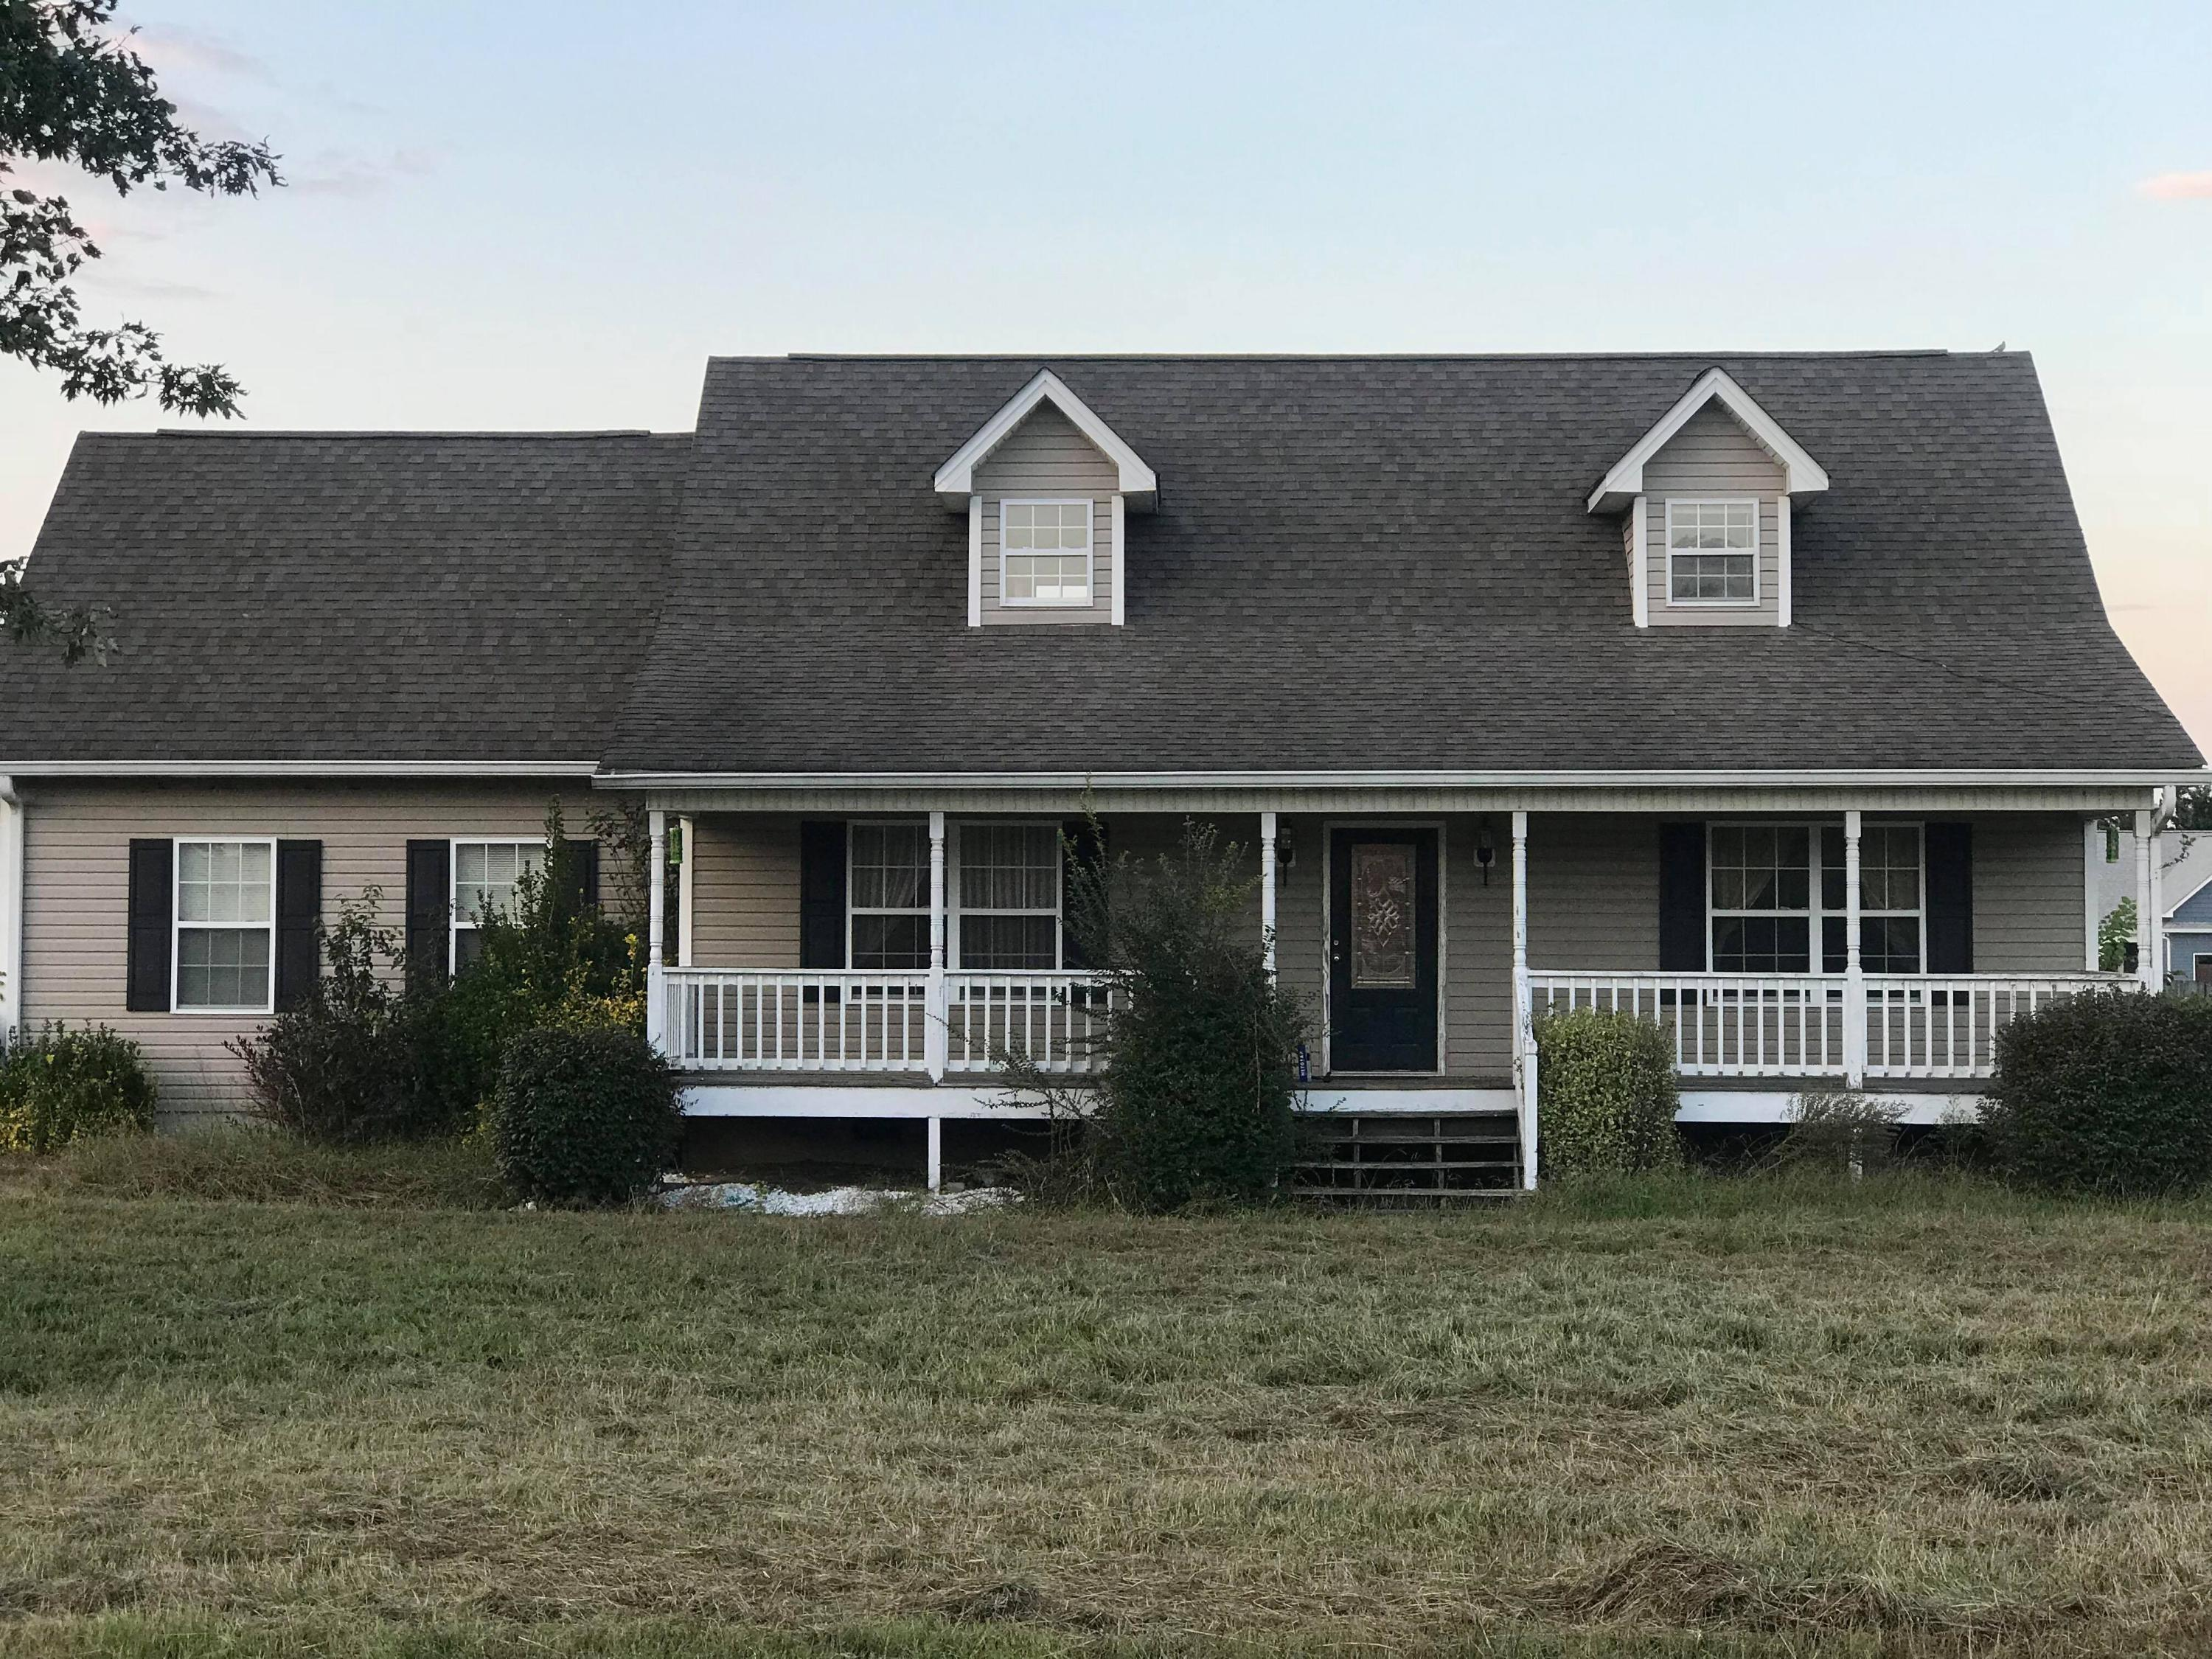 127 Misty Meadows Cir, Cleveland, TN 37323